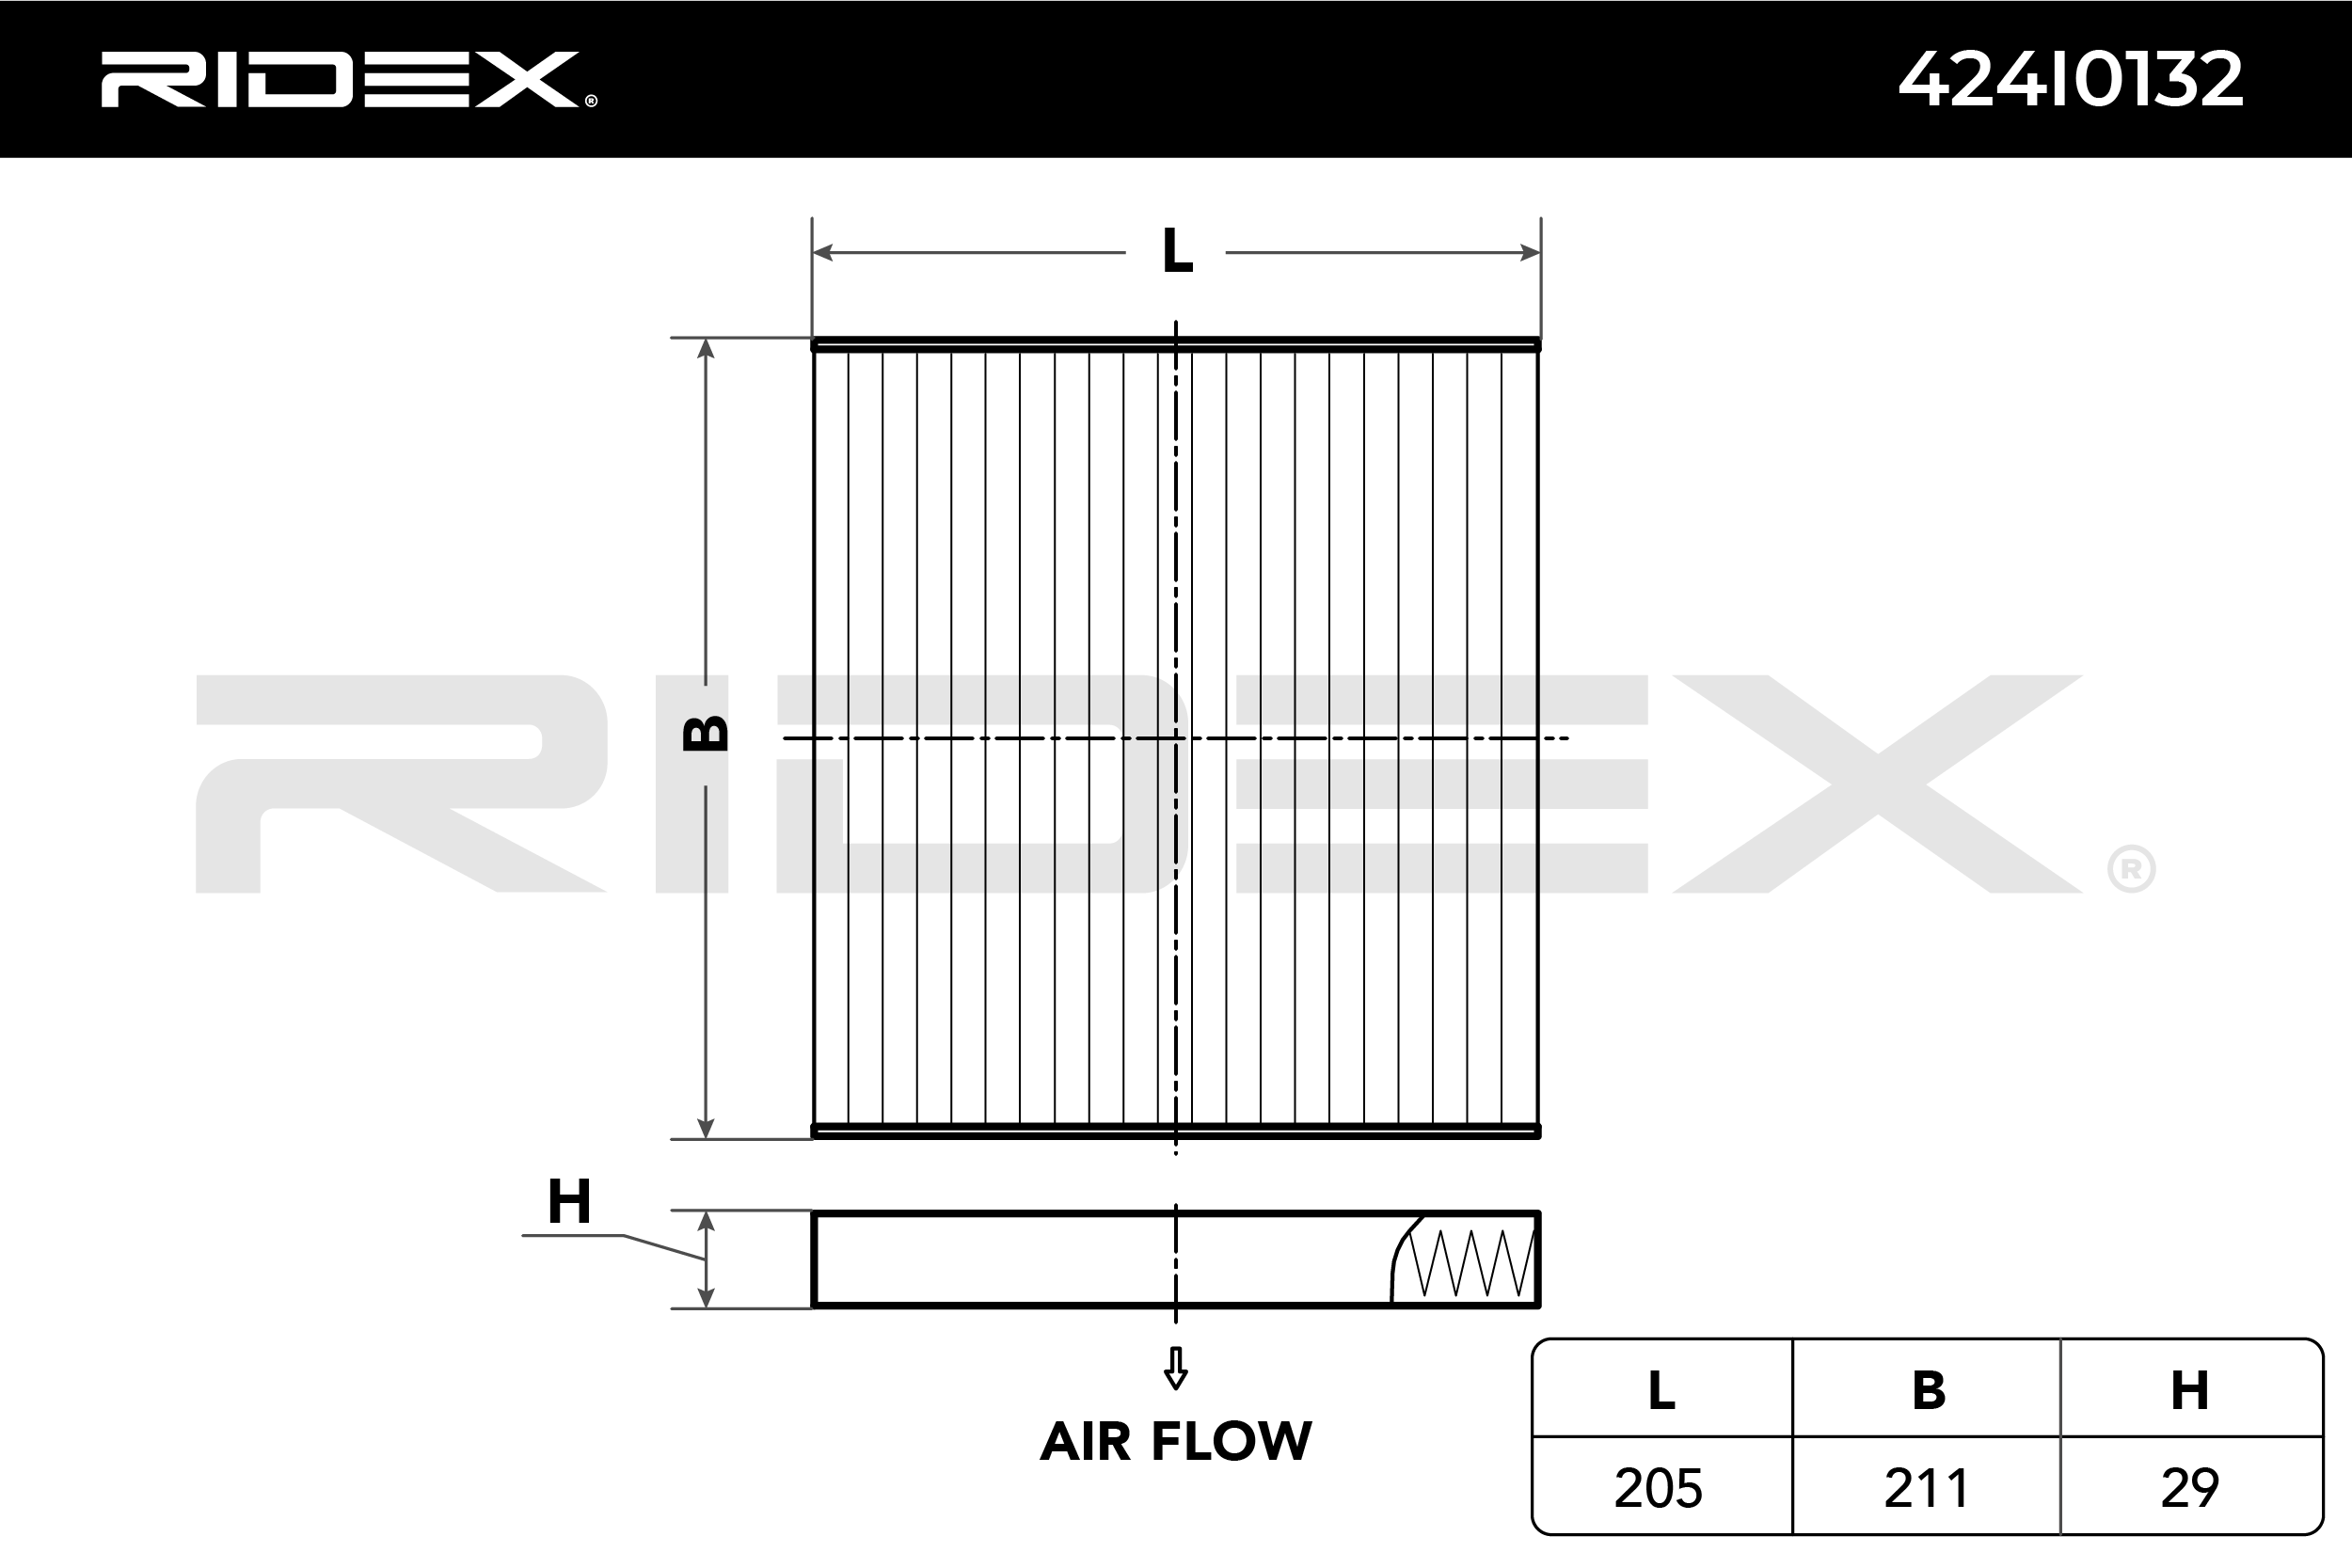 Cabin Air Filter RIDEX 424I0132 expert knowledge